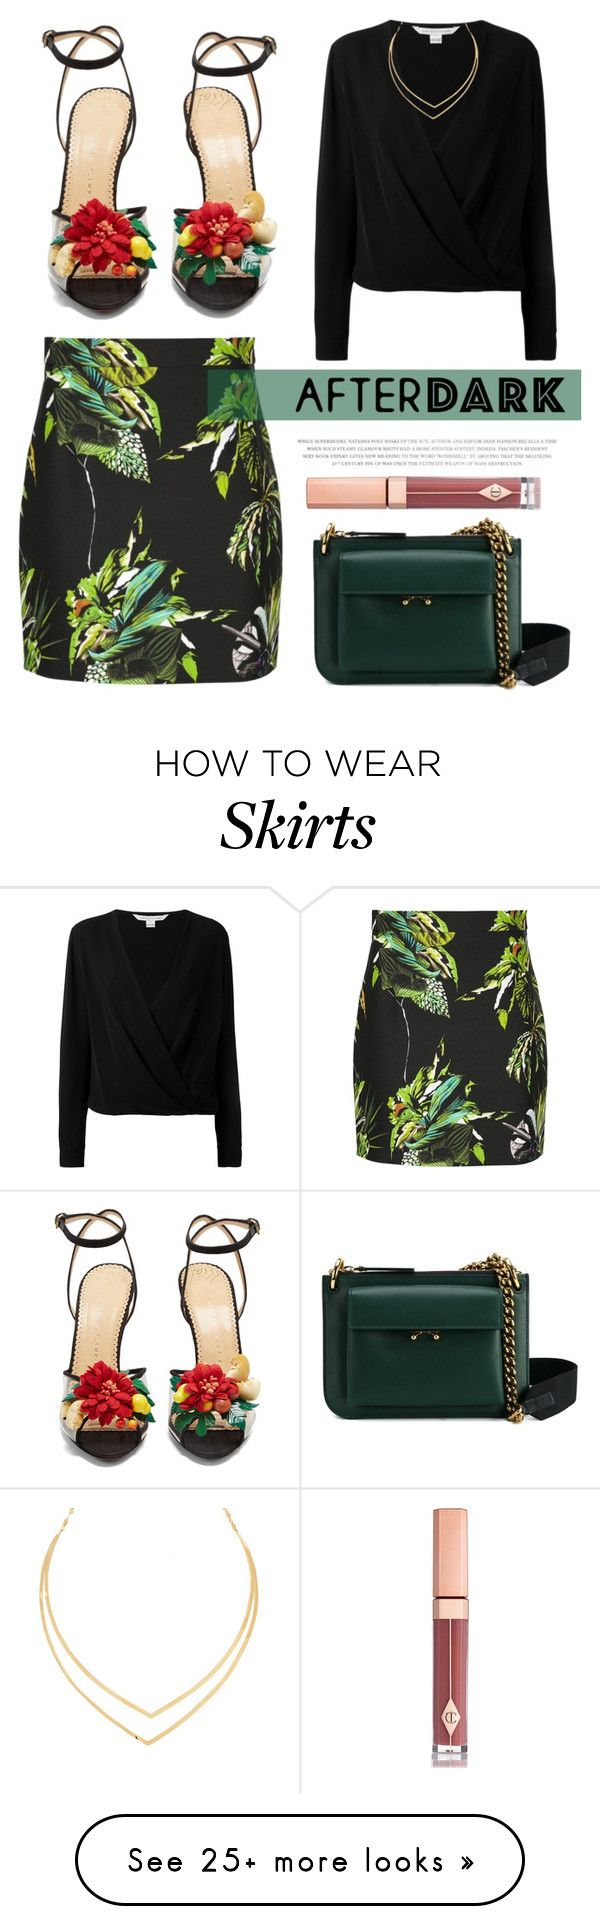 """Copacabana"" by blueyed on Polyvore featuring Proenza Schouler, Marni, Diane Von Furstenberg, Charlotte Olympia, Lana and Charlotte Tilbury"